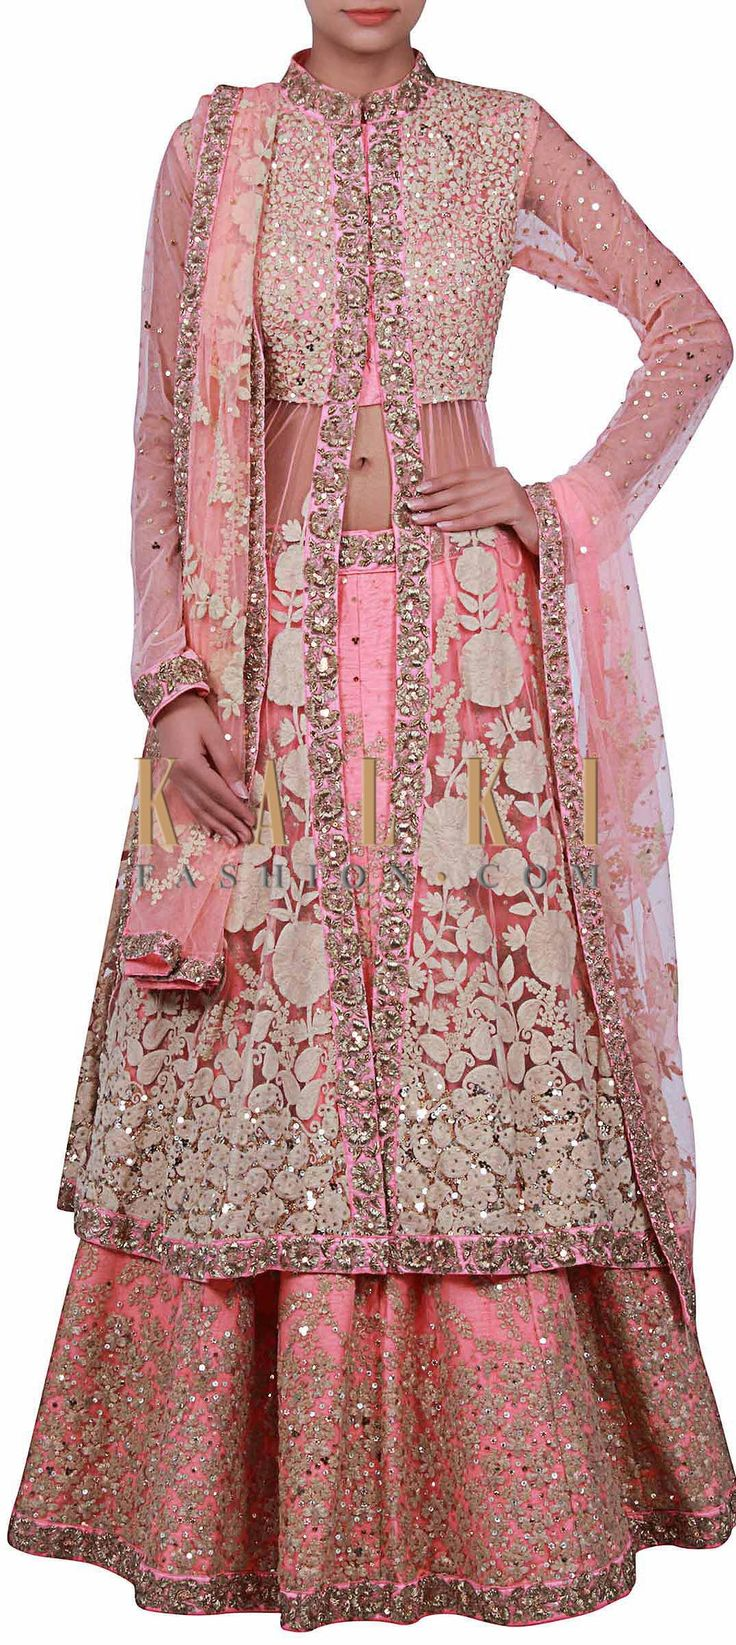 Buy Online from the link below. We ship worldwide (Free Shipping over US$100) http://www.kalkifashion.com/pink-long-jacket-lehenga-enhanced-in-thread-embroidery-featuring-in-only-on-kalki.html